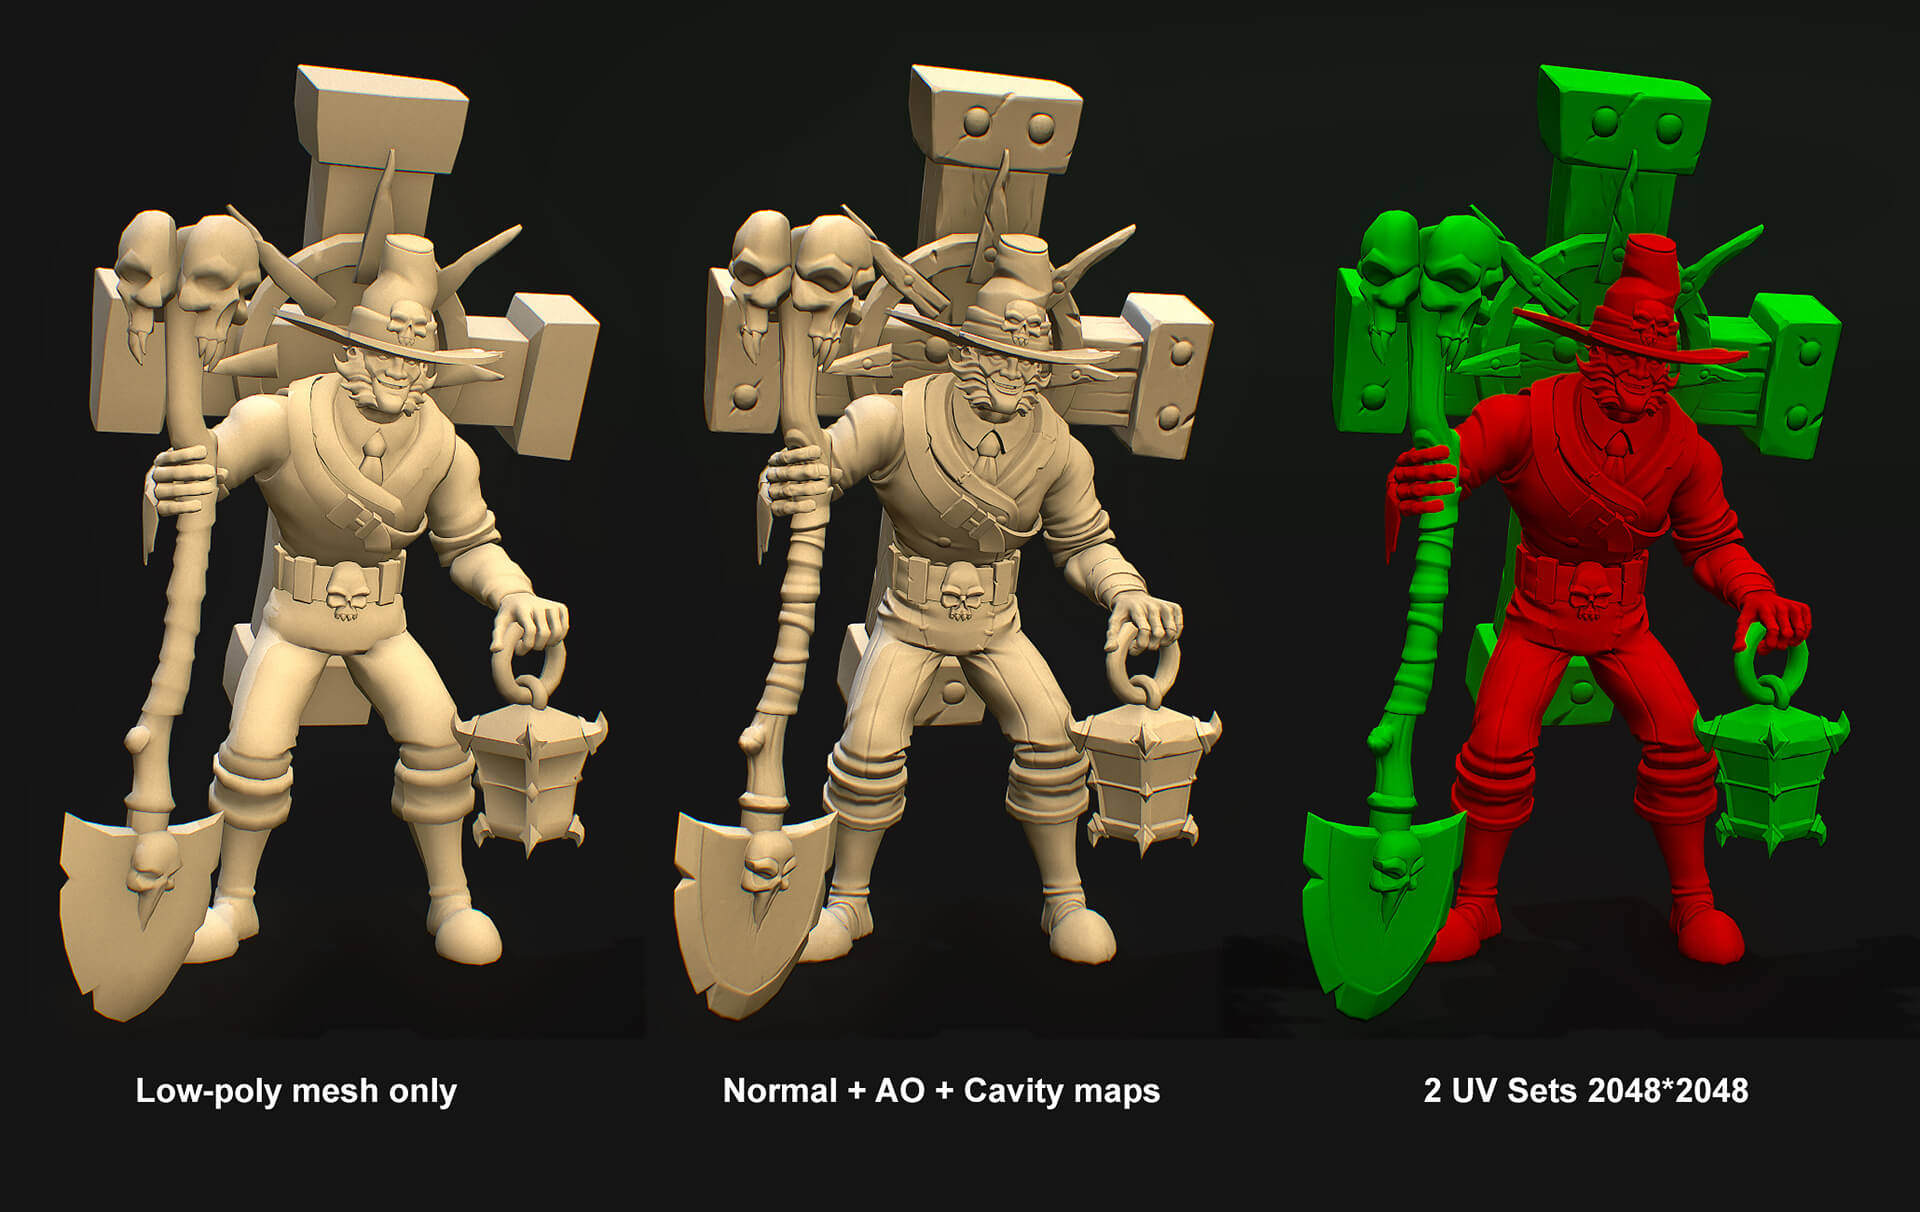 Low poly model of the character